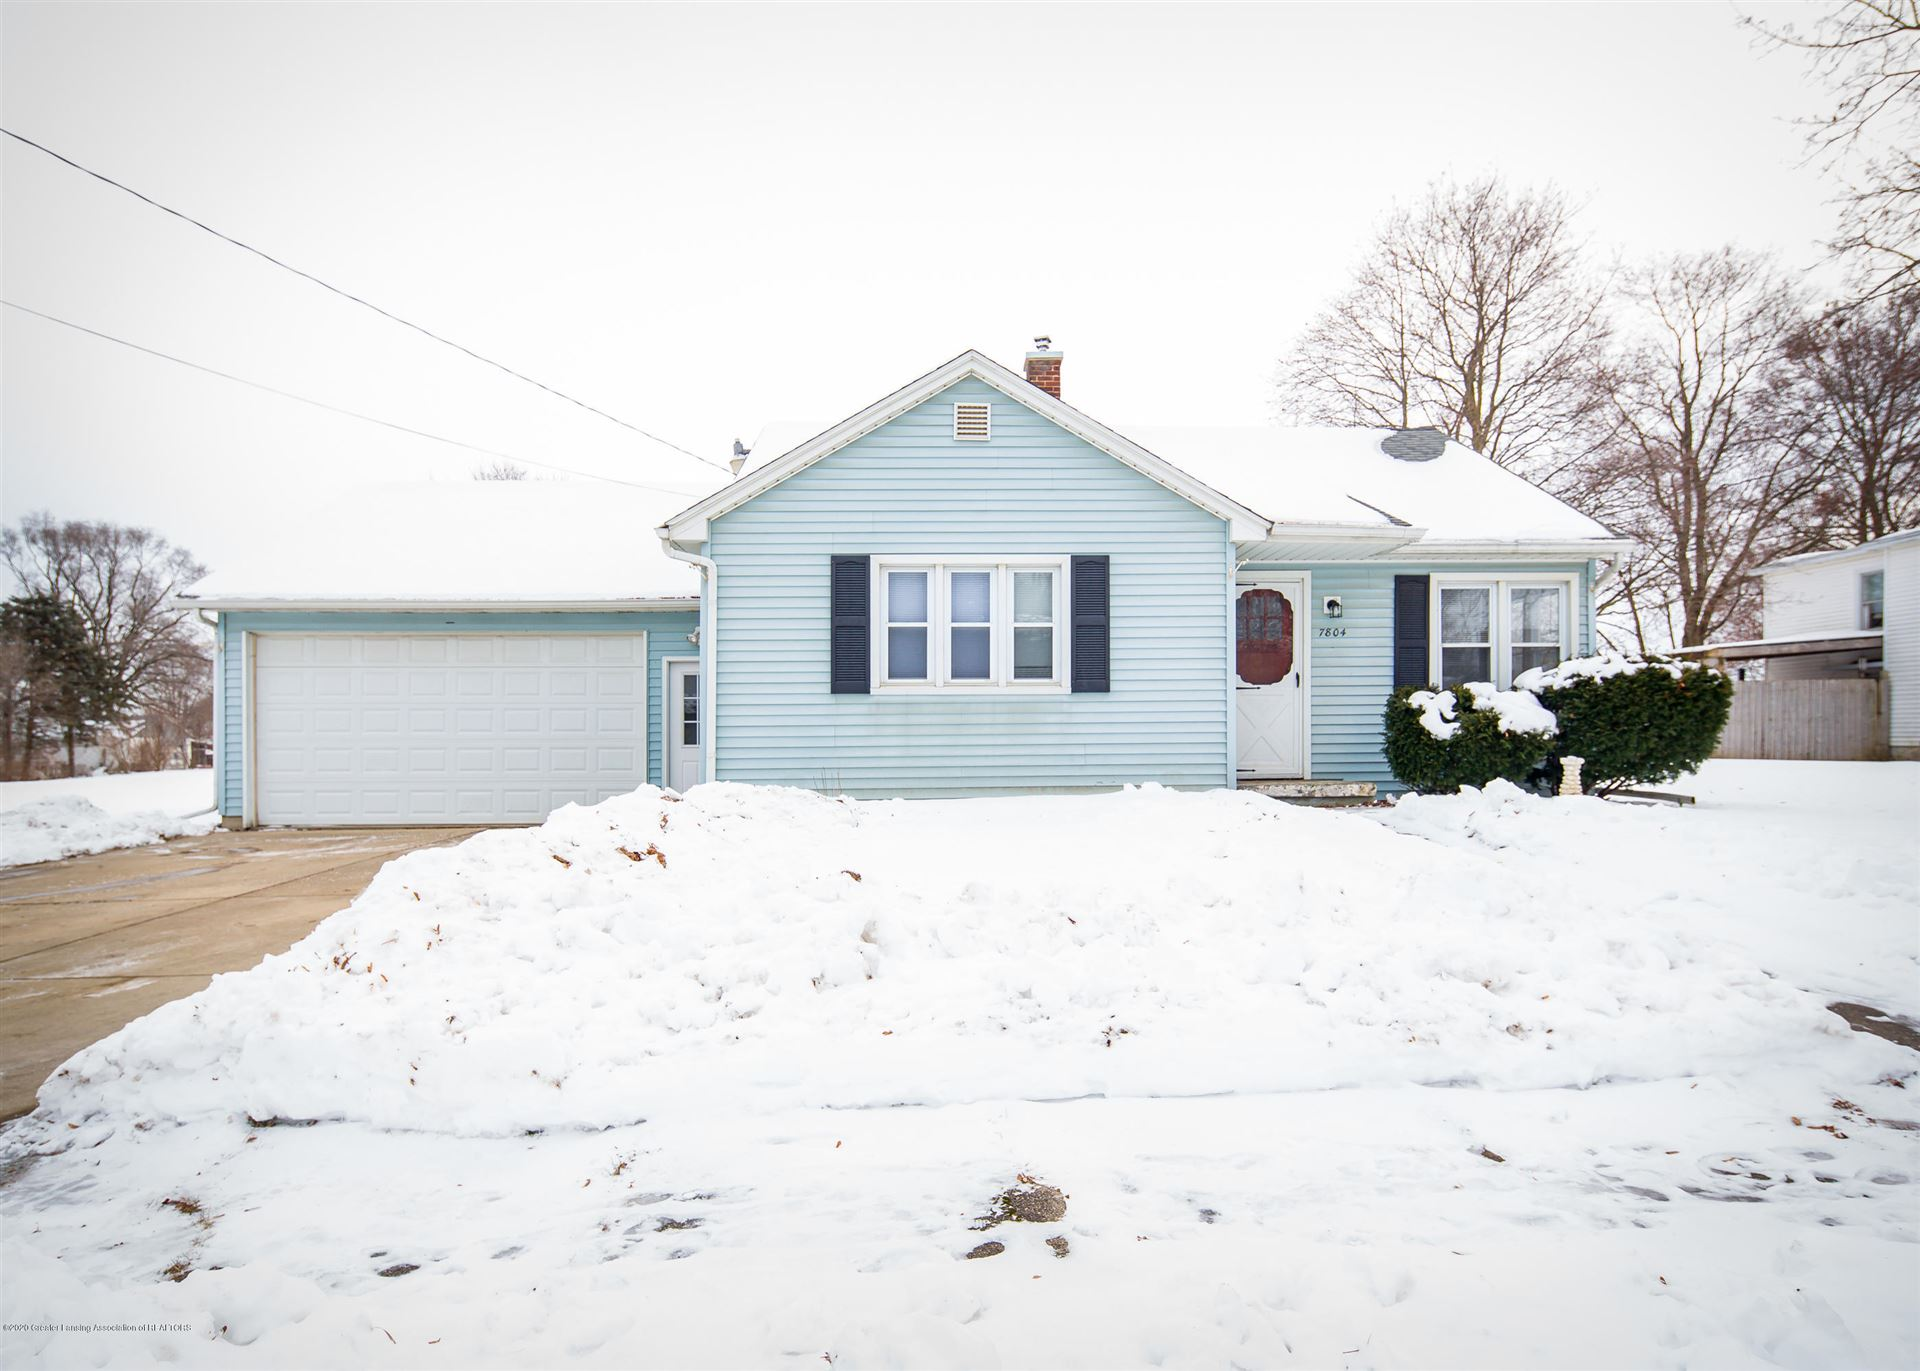 Photo of 7804 N Welling Road, St. Johns, MI 48879 (MLS # 243764)